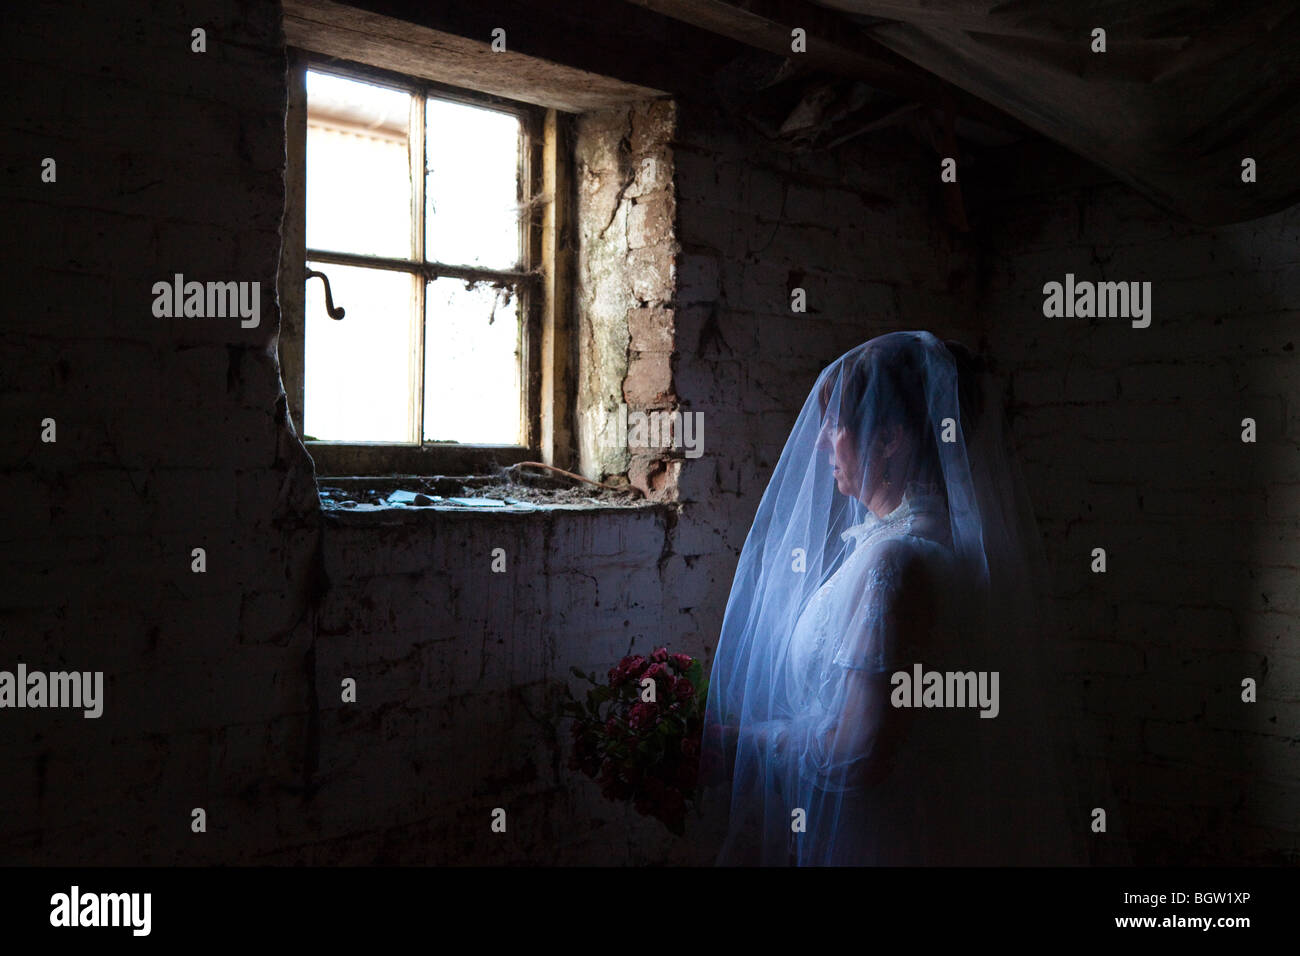 woman appearing like a ghost in old building - Stock Image